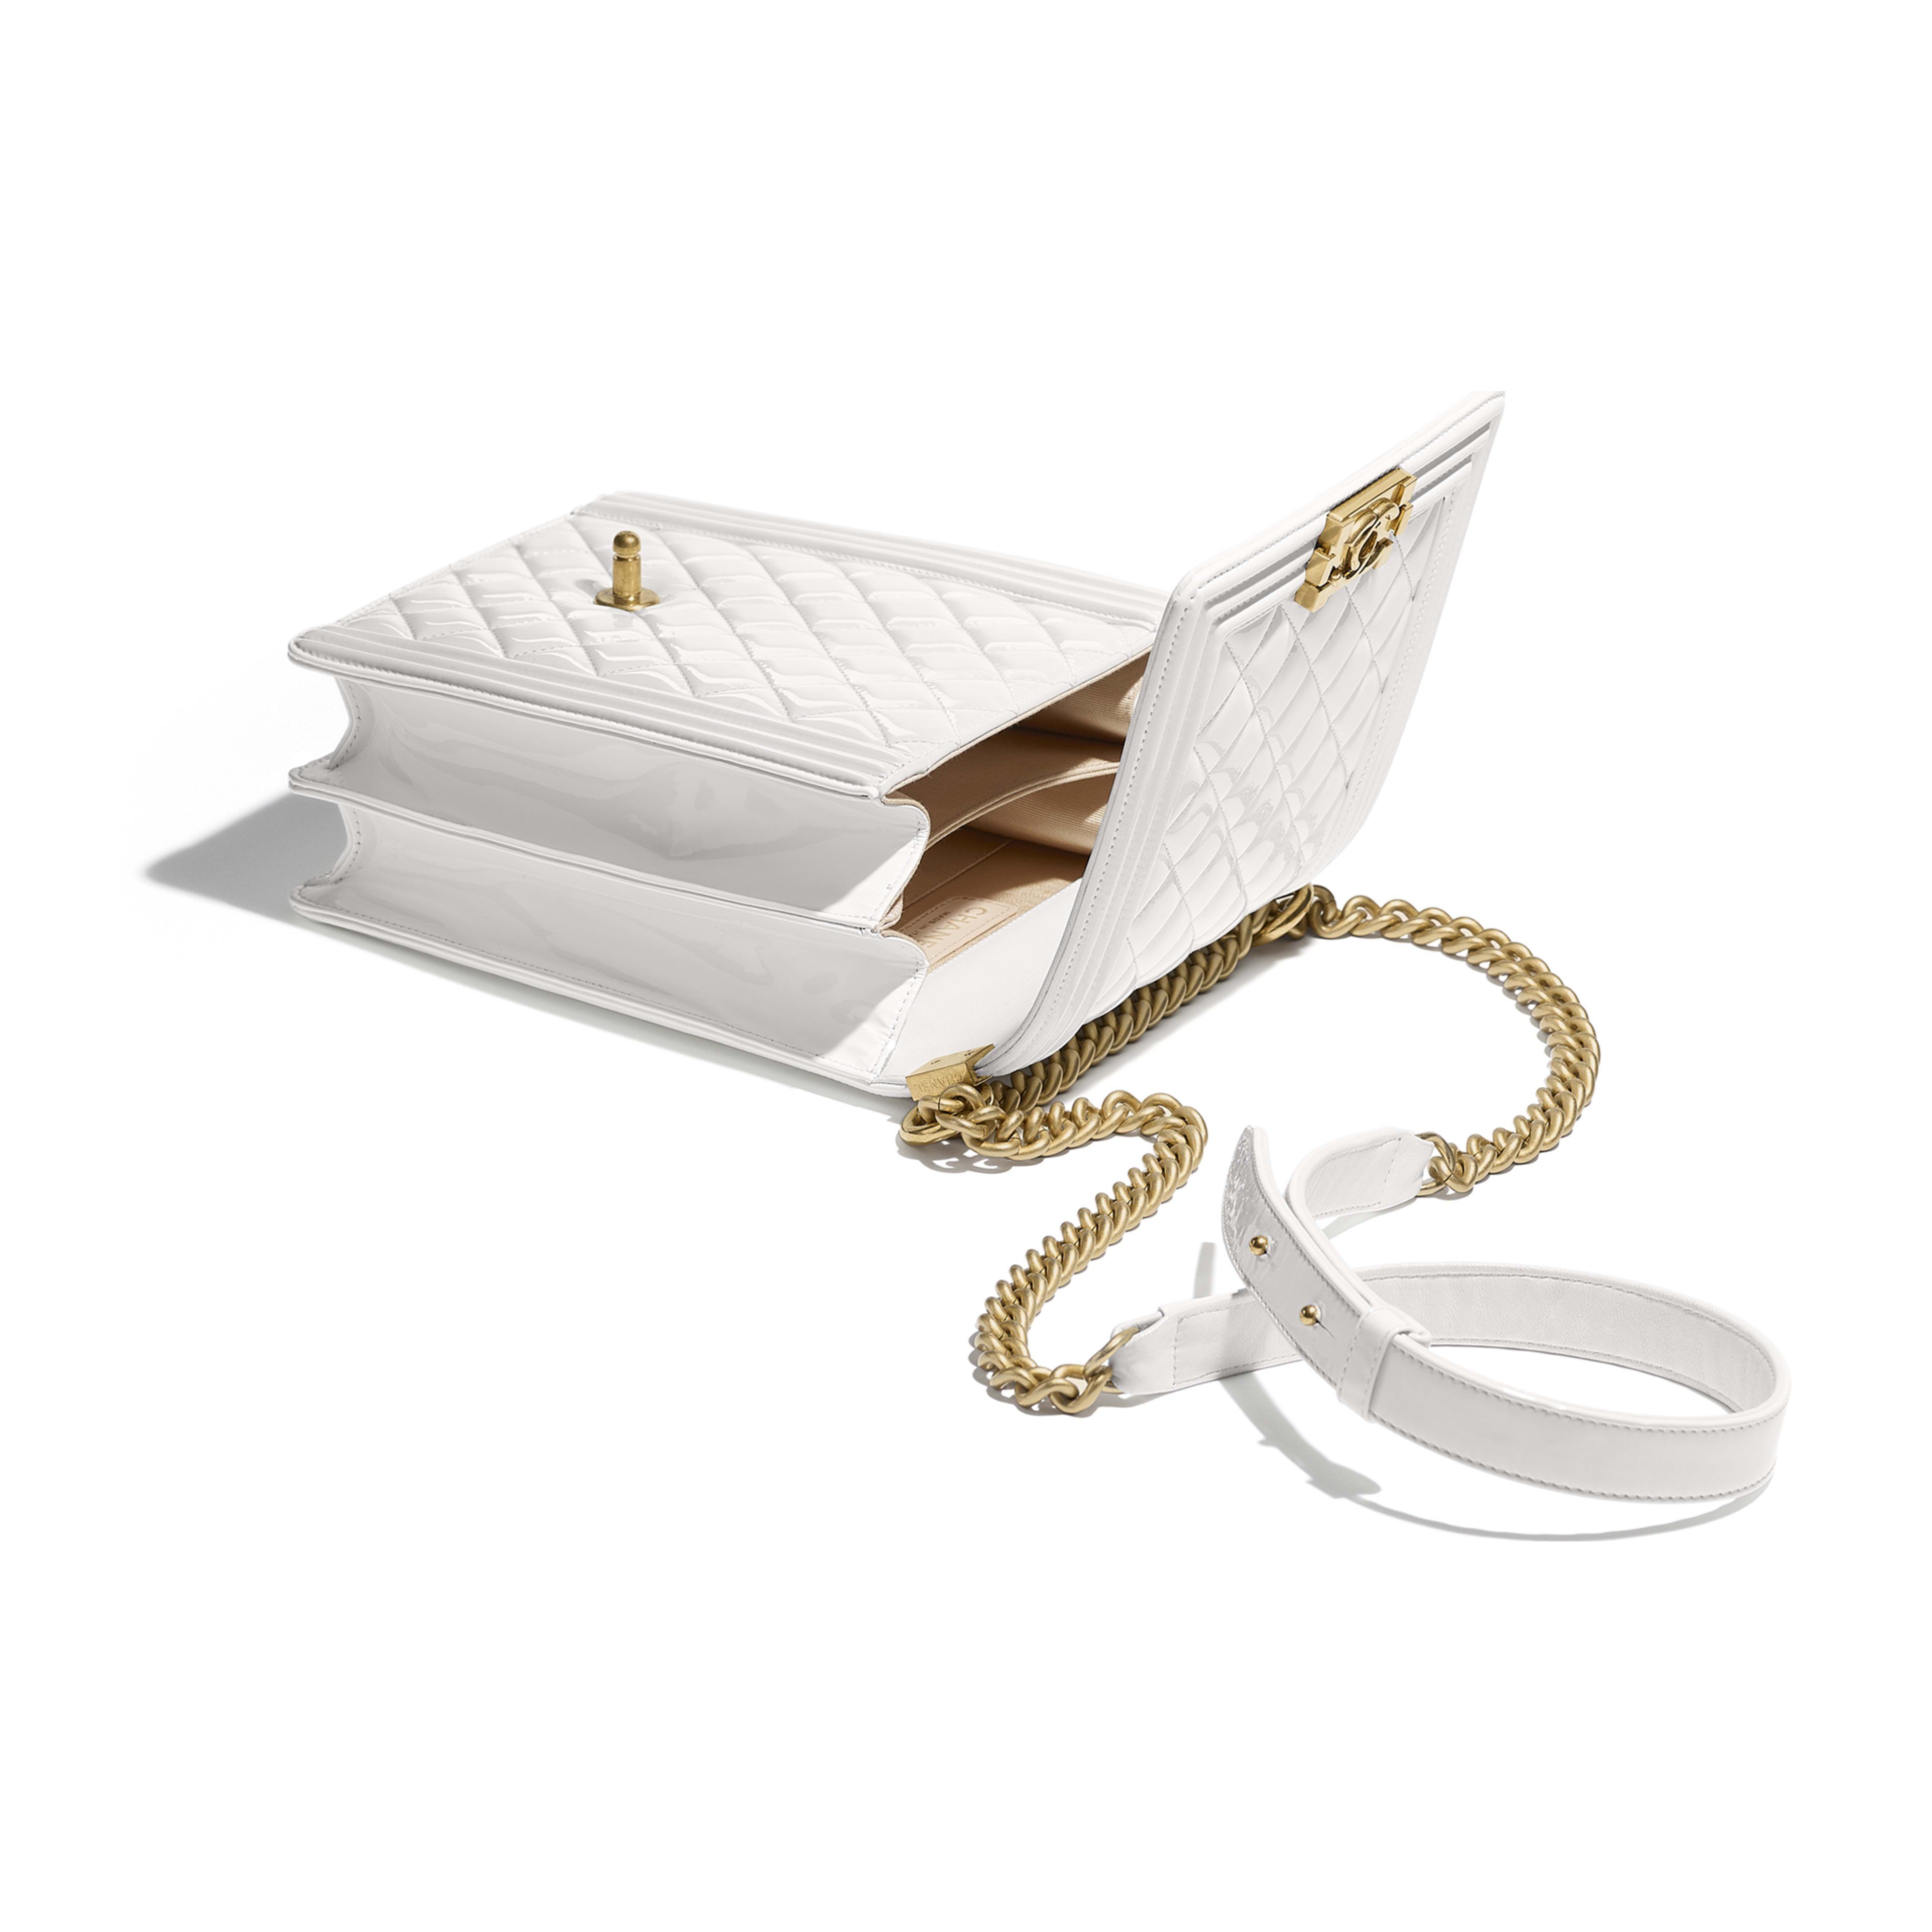 BOY CHANEL Handbag - White - Patent Calfskin & Gold-Tone Metal - Other view - see full sized version